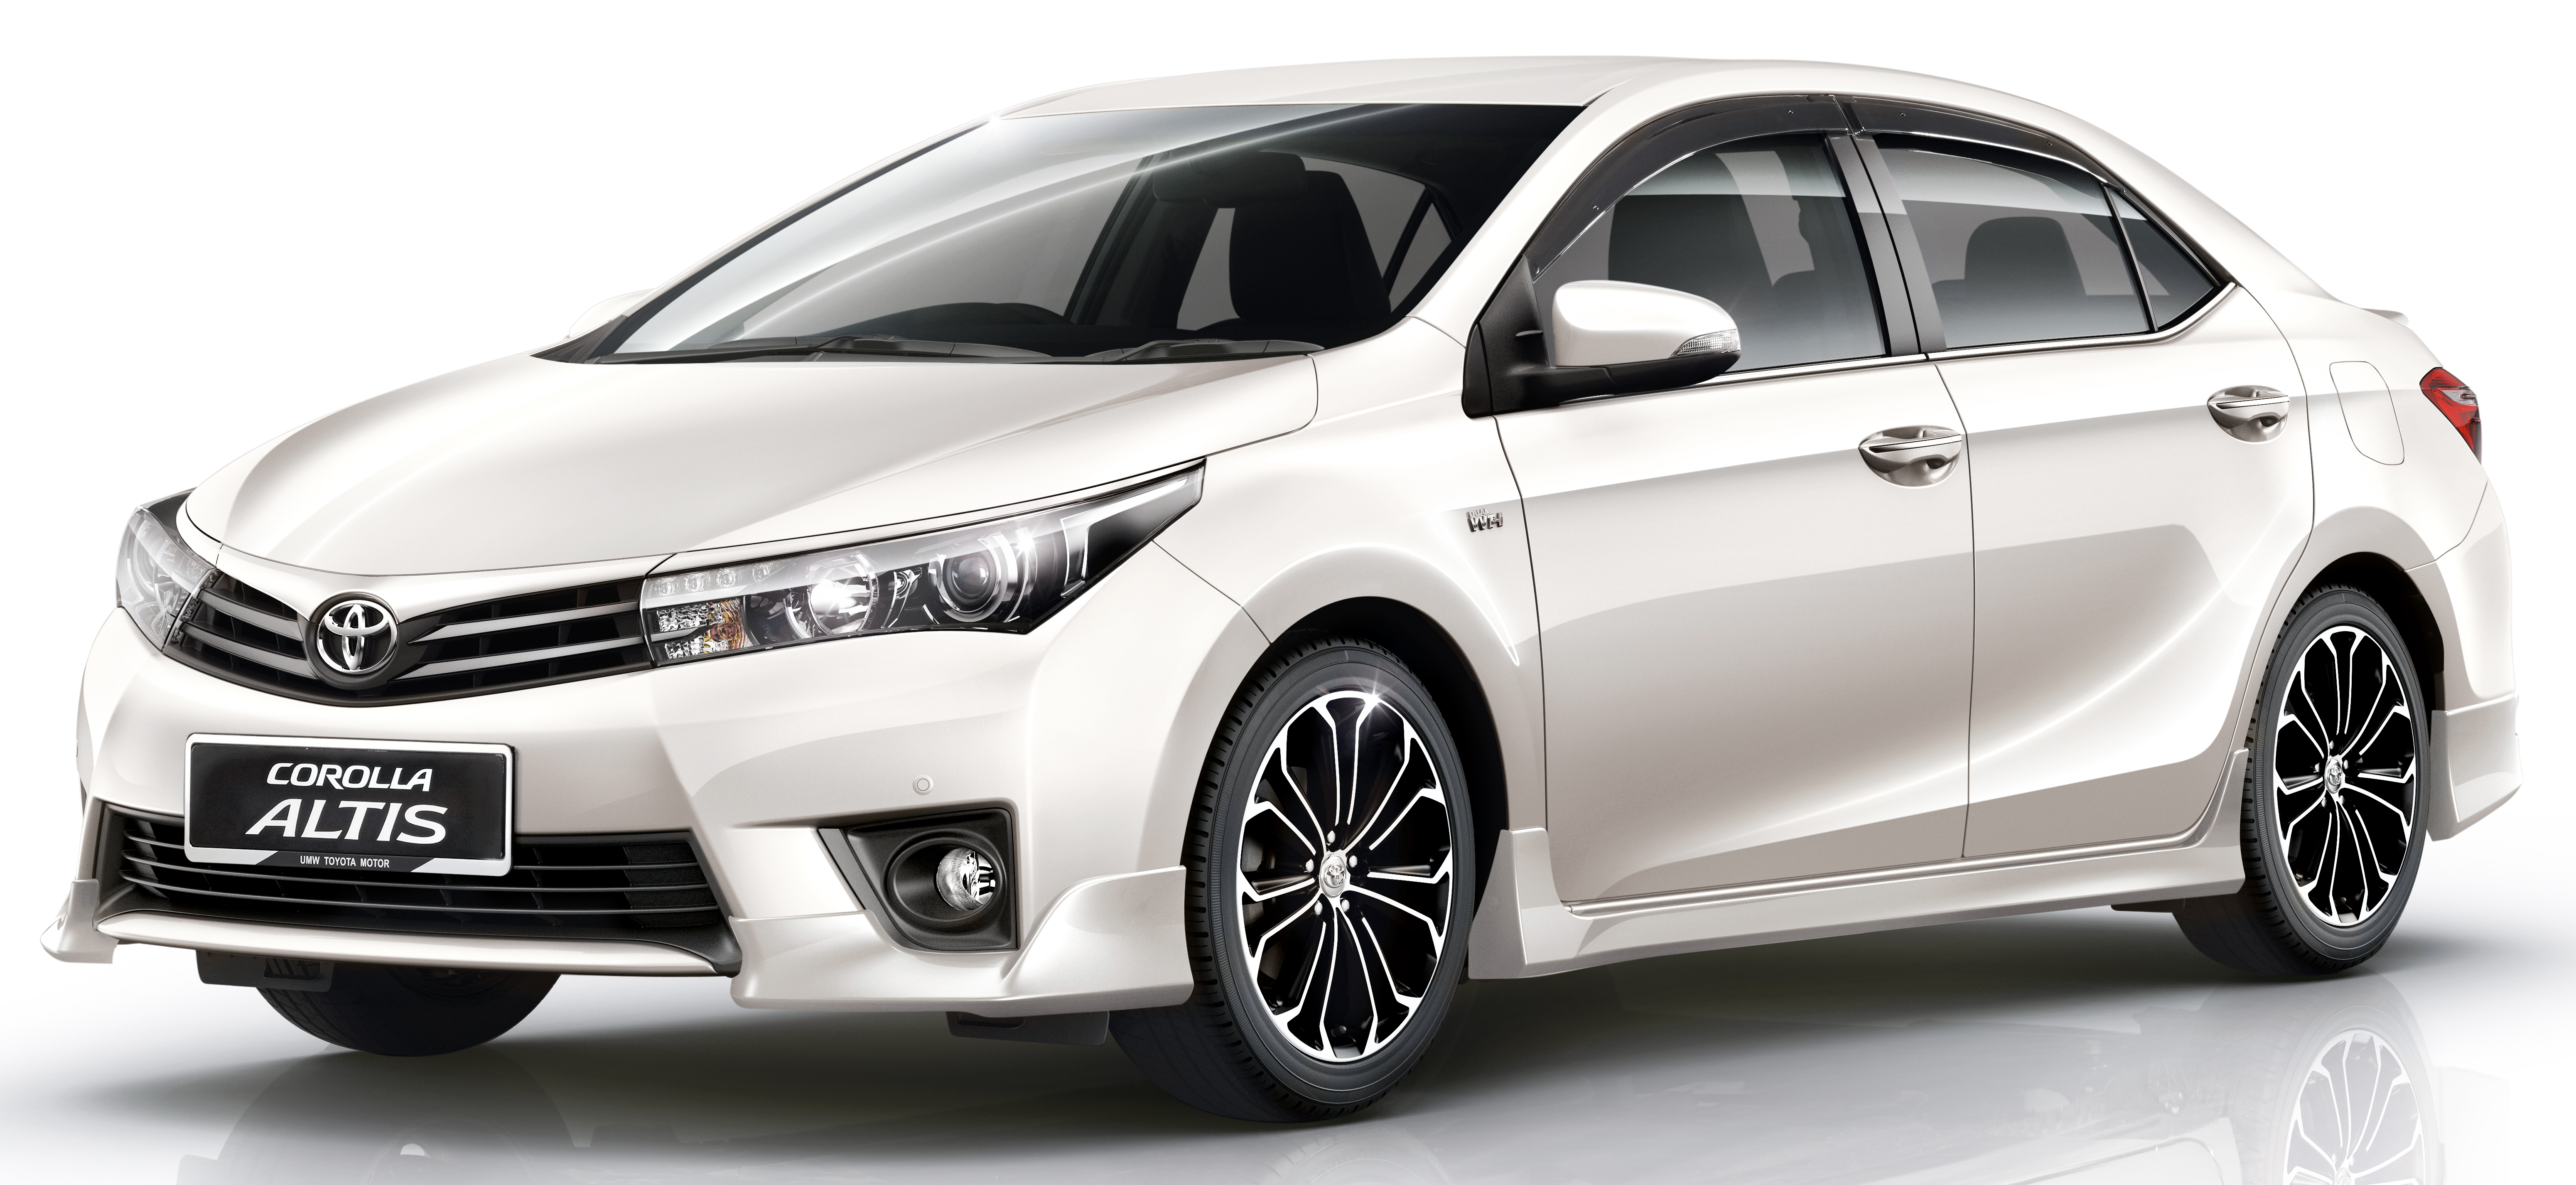 2014 Toyota Corolla Altis Malaysian Prices Confirmed